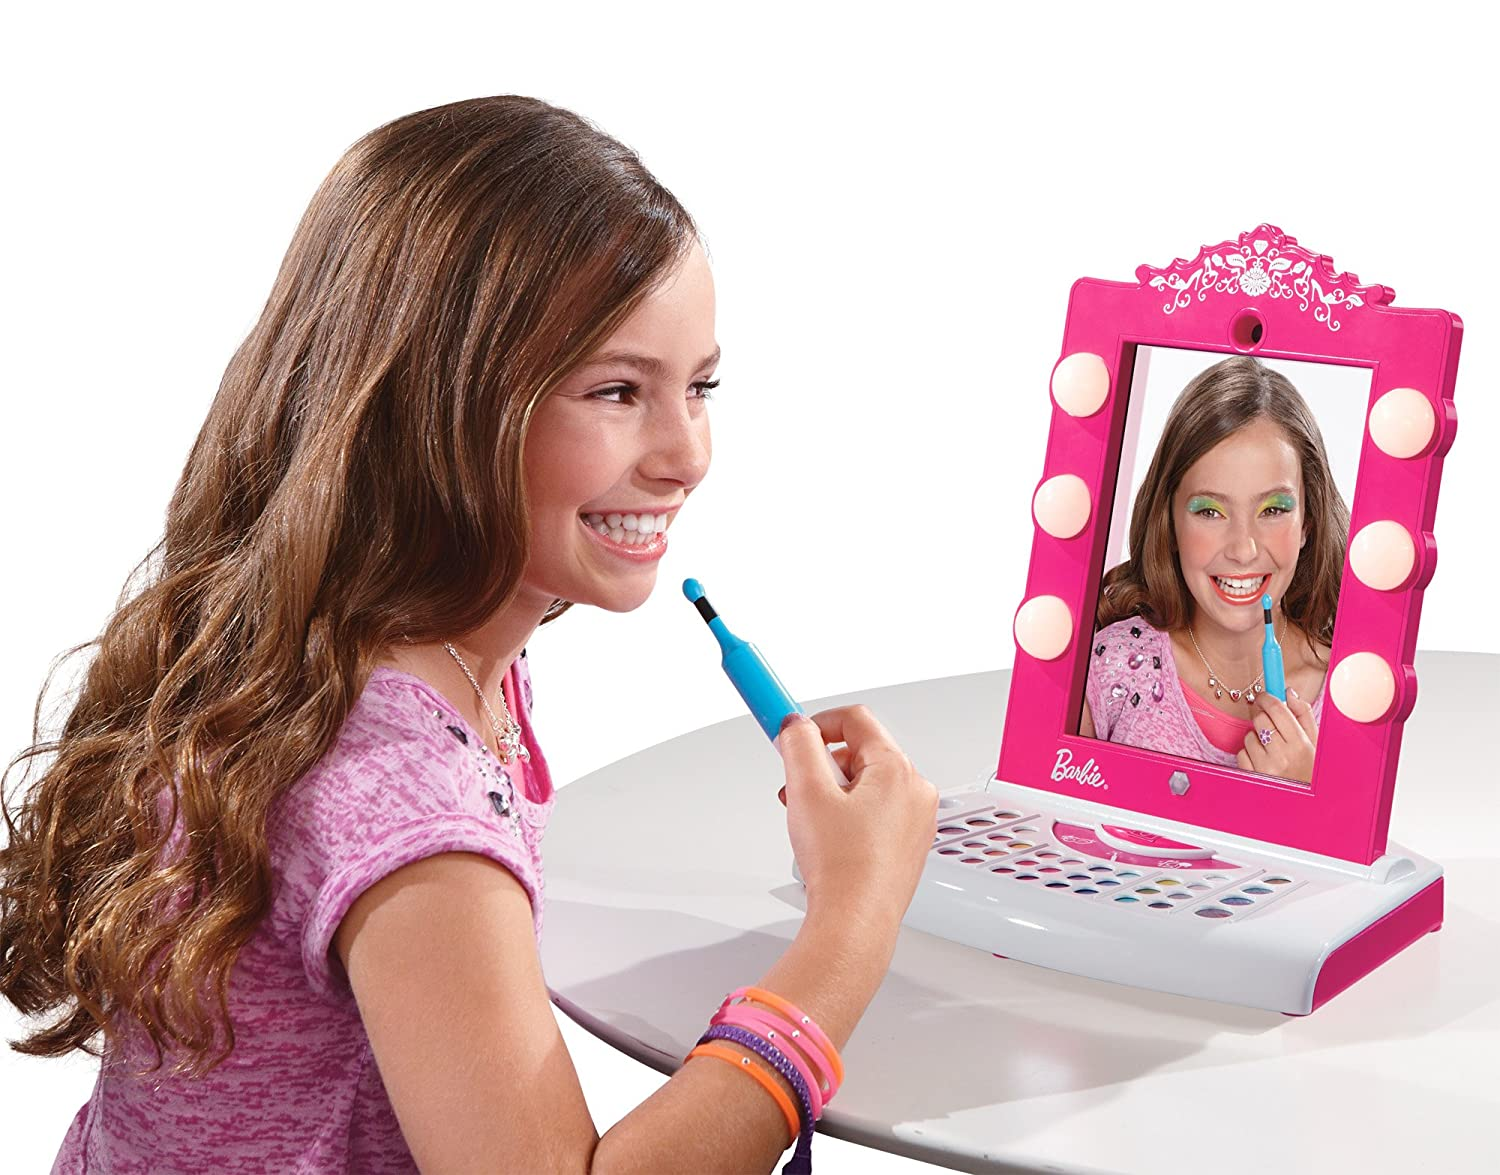 amazoncom barbie digital makeover mirror toys games